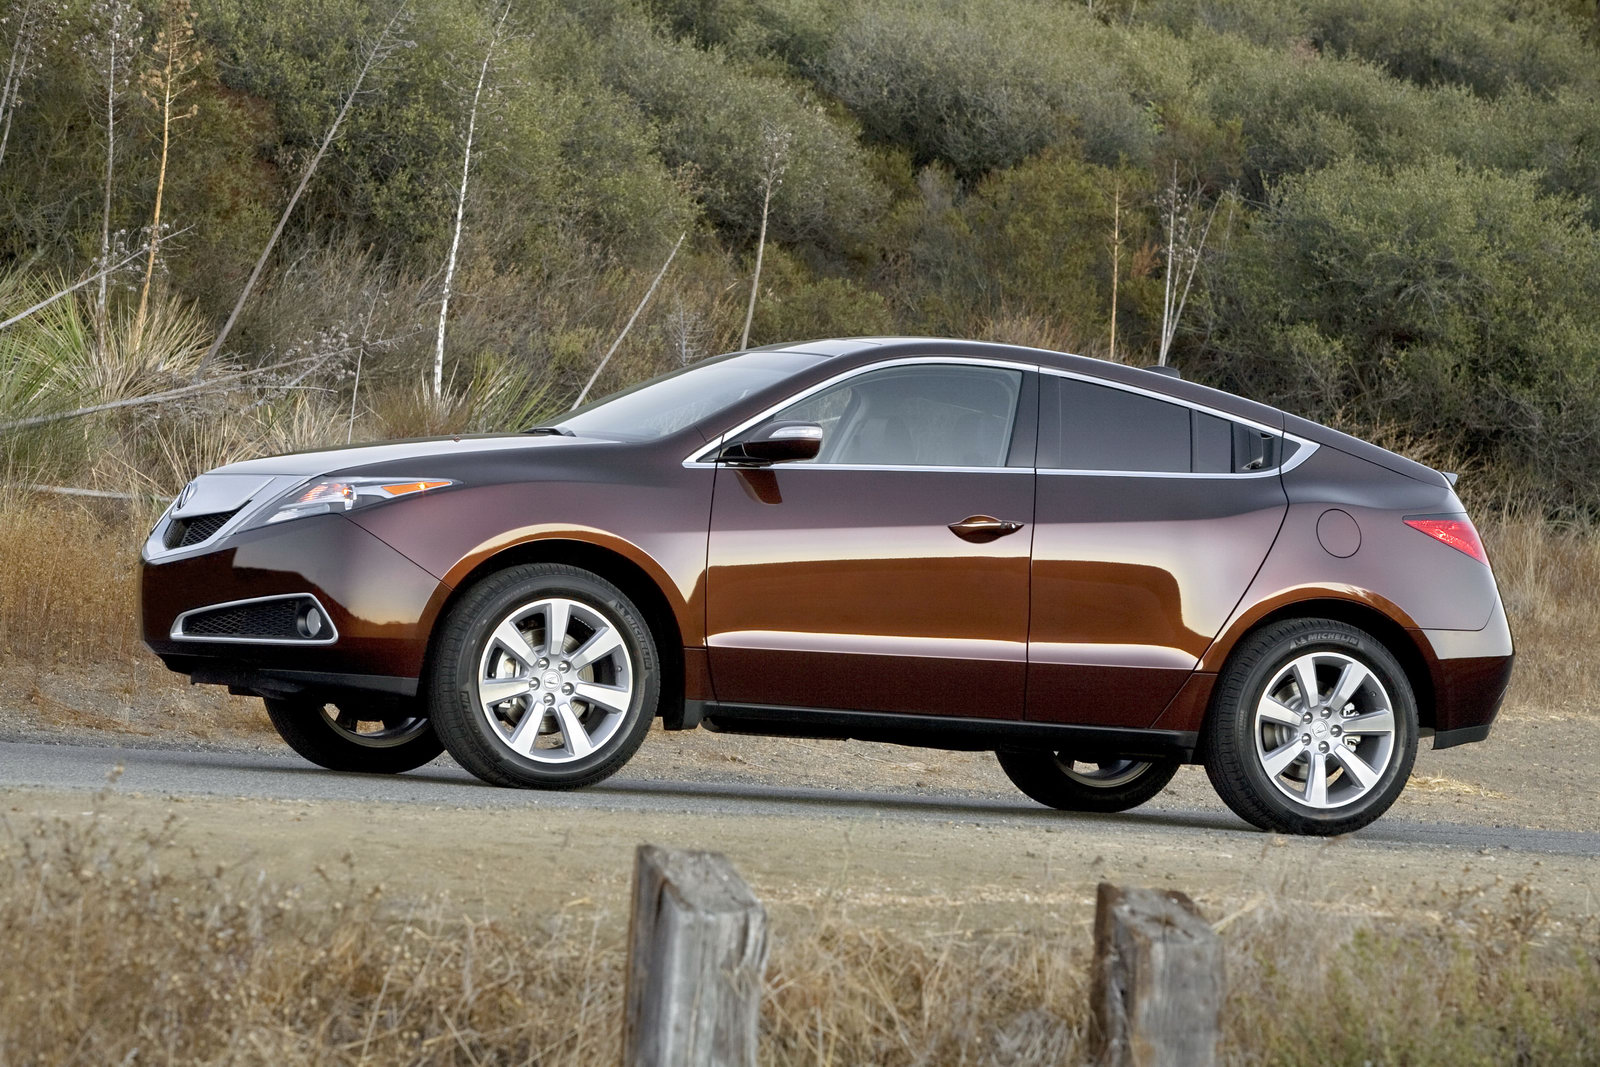 conceptcarz for and news zdx sale com acura image information